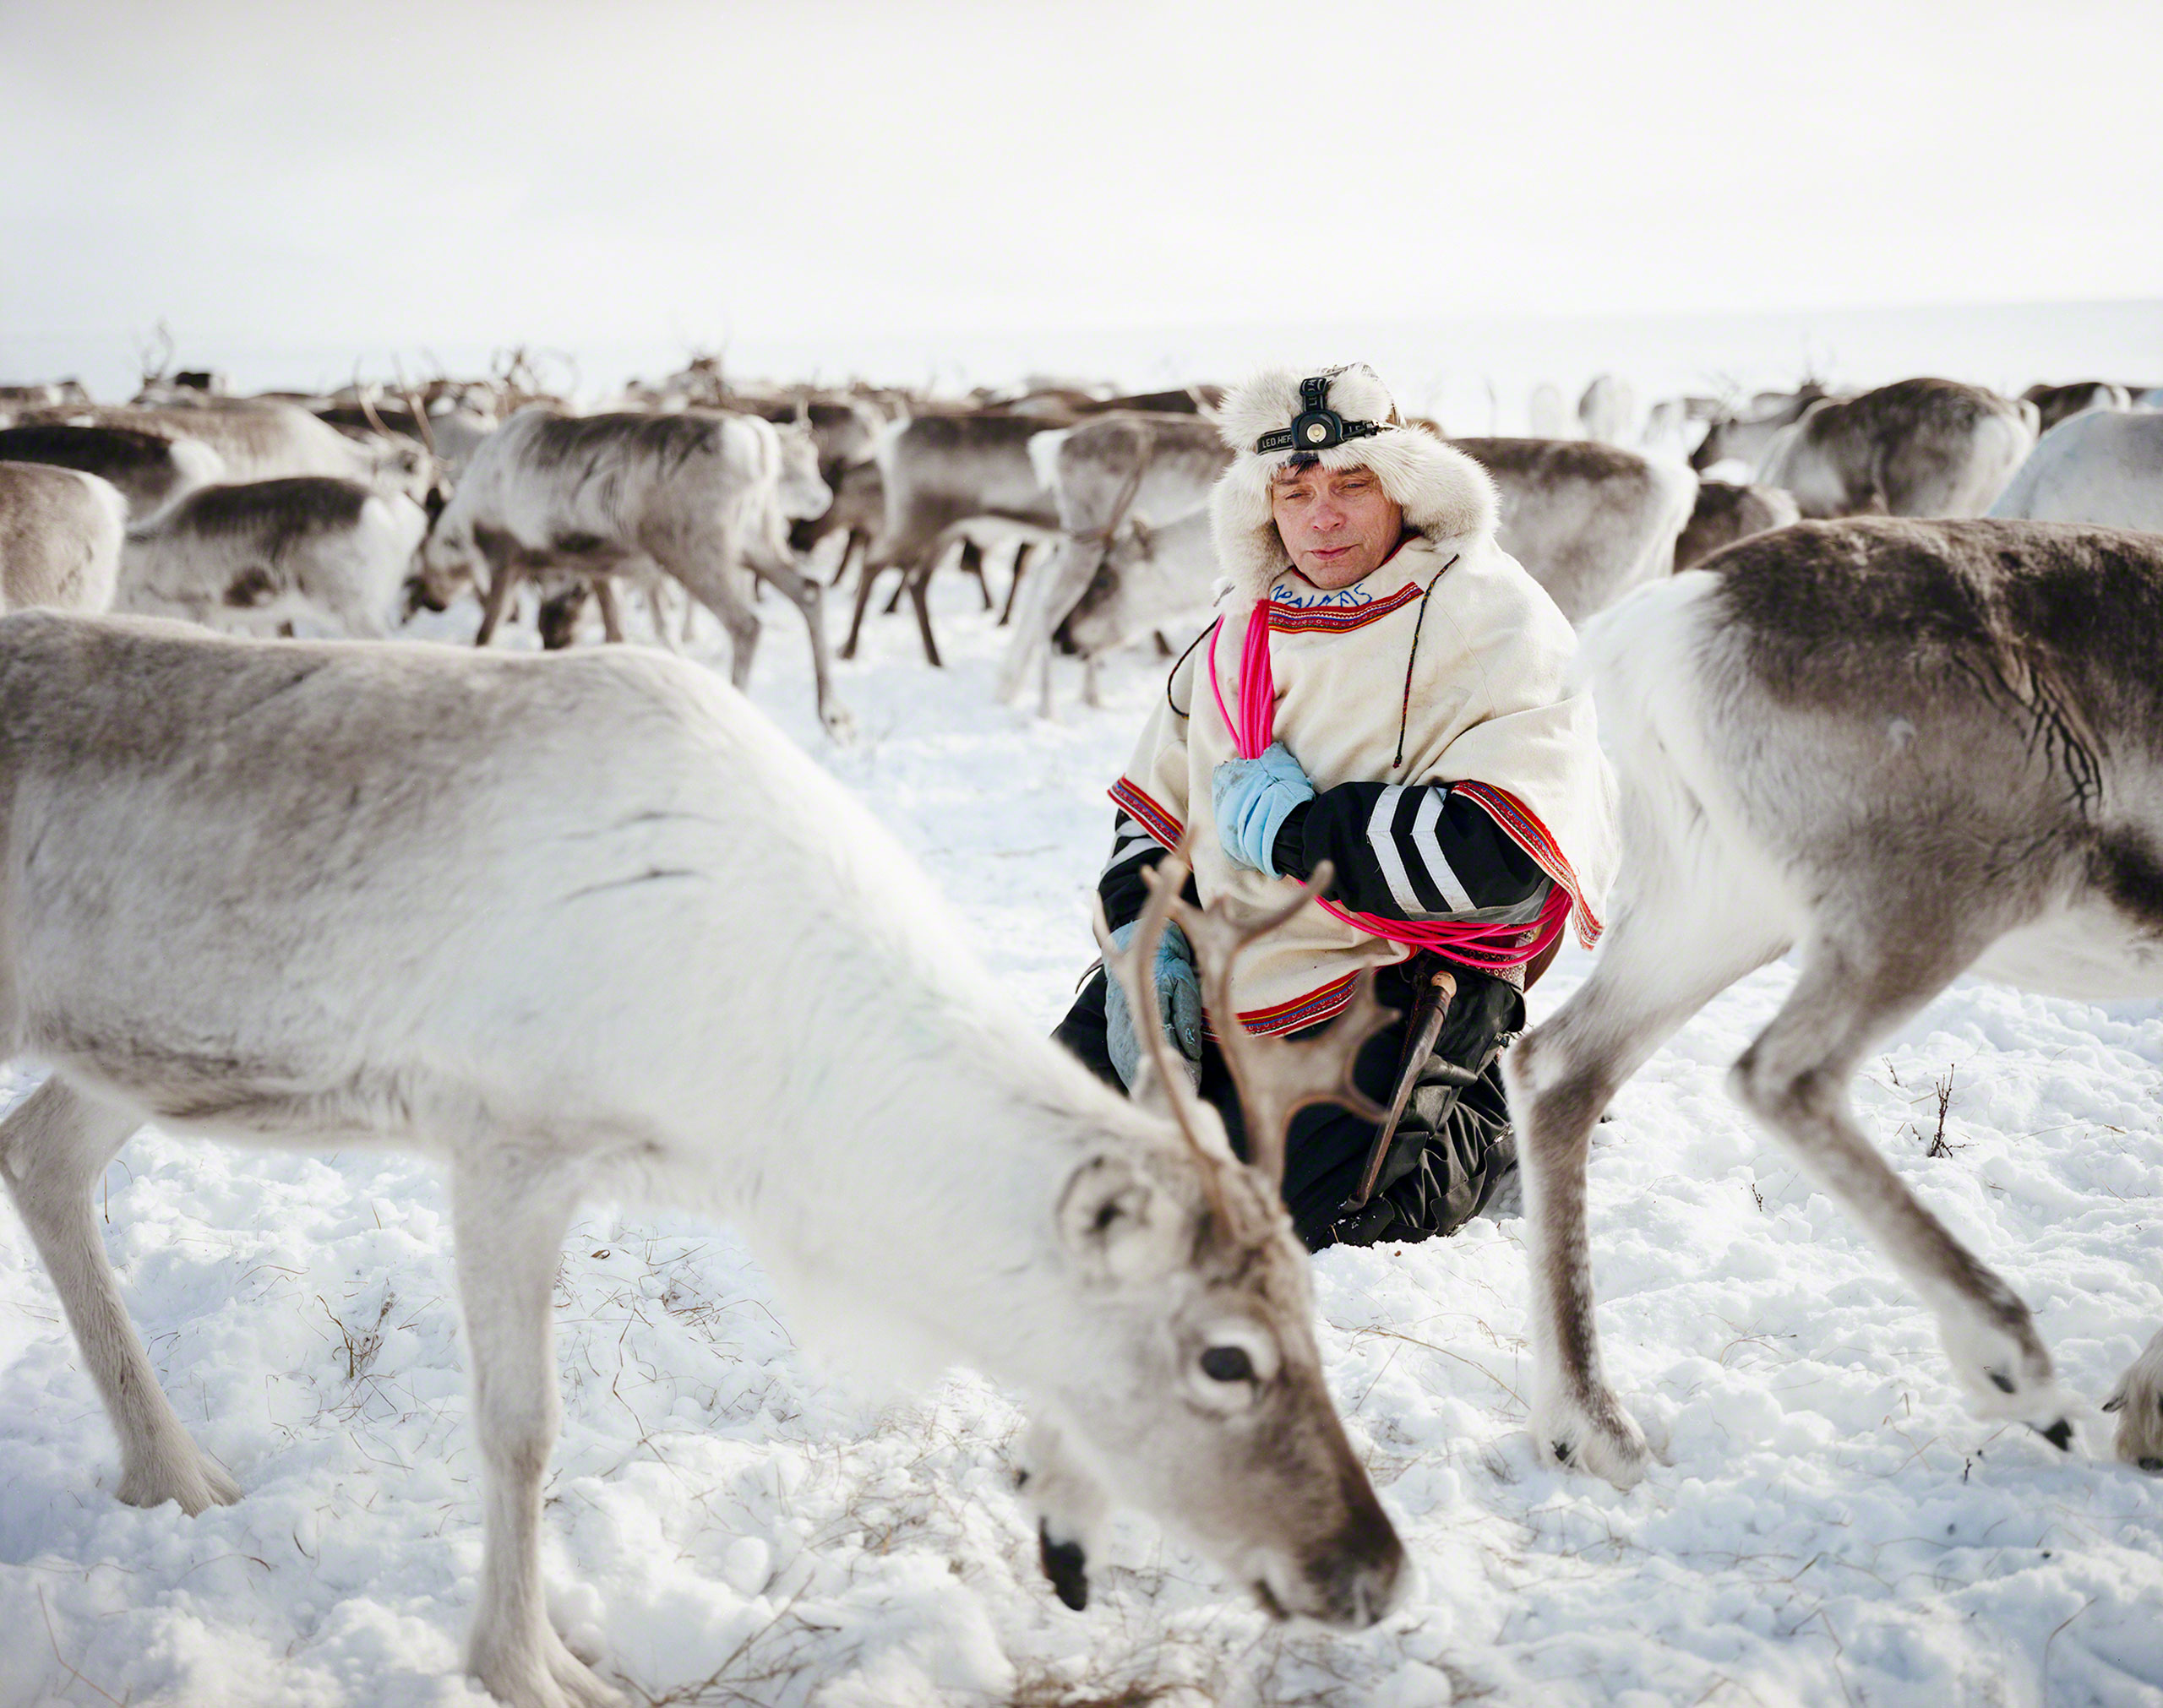 Among Buocut, 2009, from Sámi, Walking with Reindeer. Nils Peder, carrying a lasso color-coded for season and temperature, kneels calmly so as not to spook the reindeer herd on which his livelihood depends. The series depicts Sami herders who follow the migrations of reindeer across northern Scandinavia throughout the year.